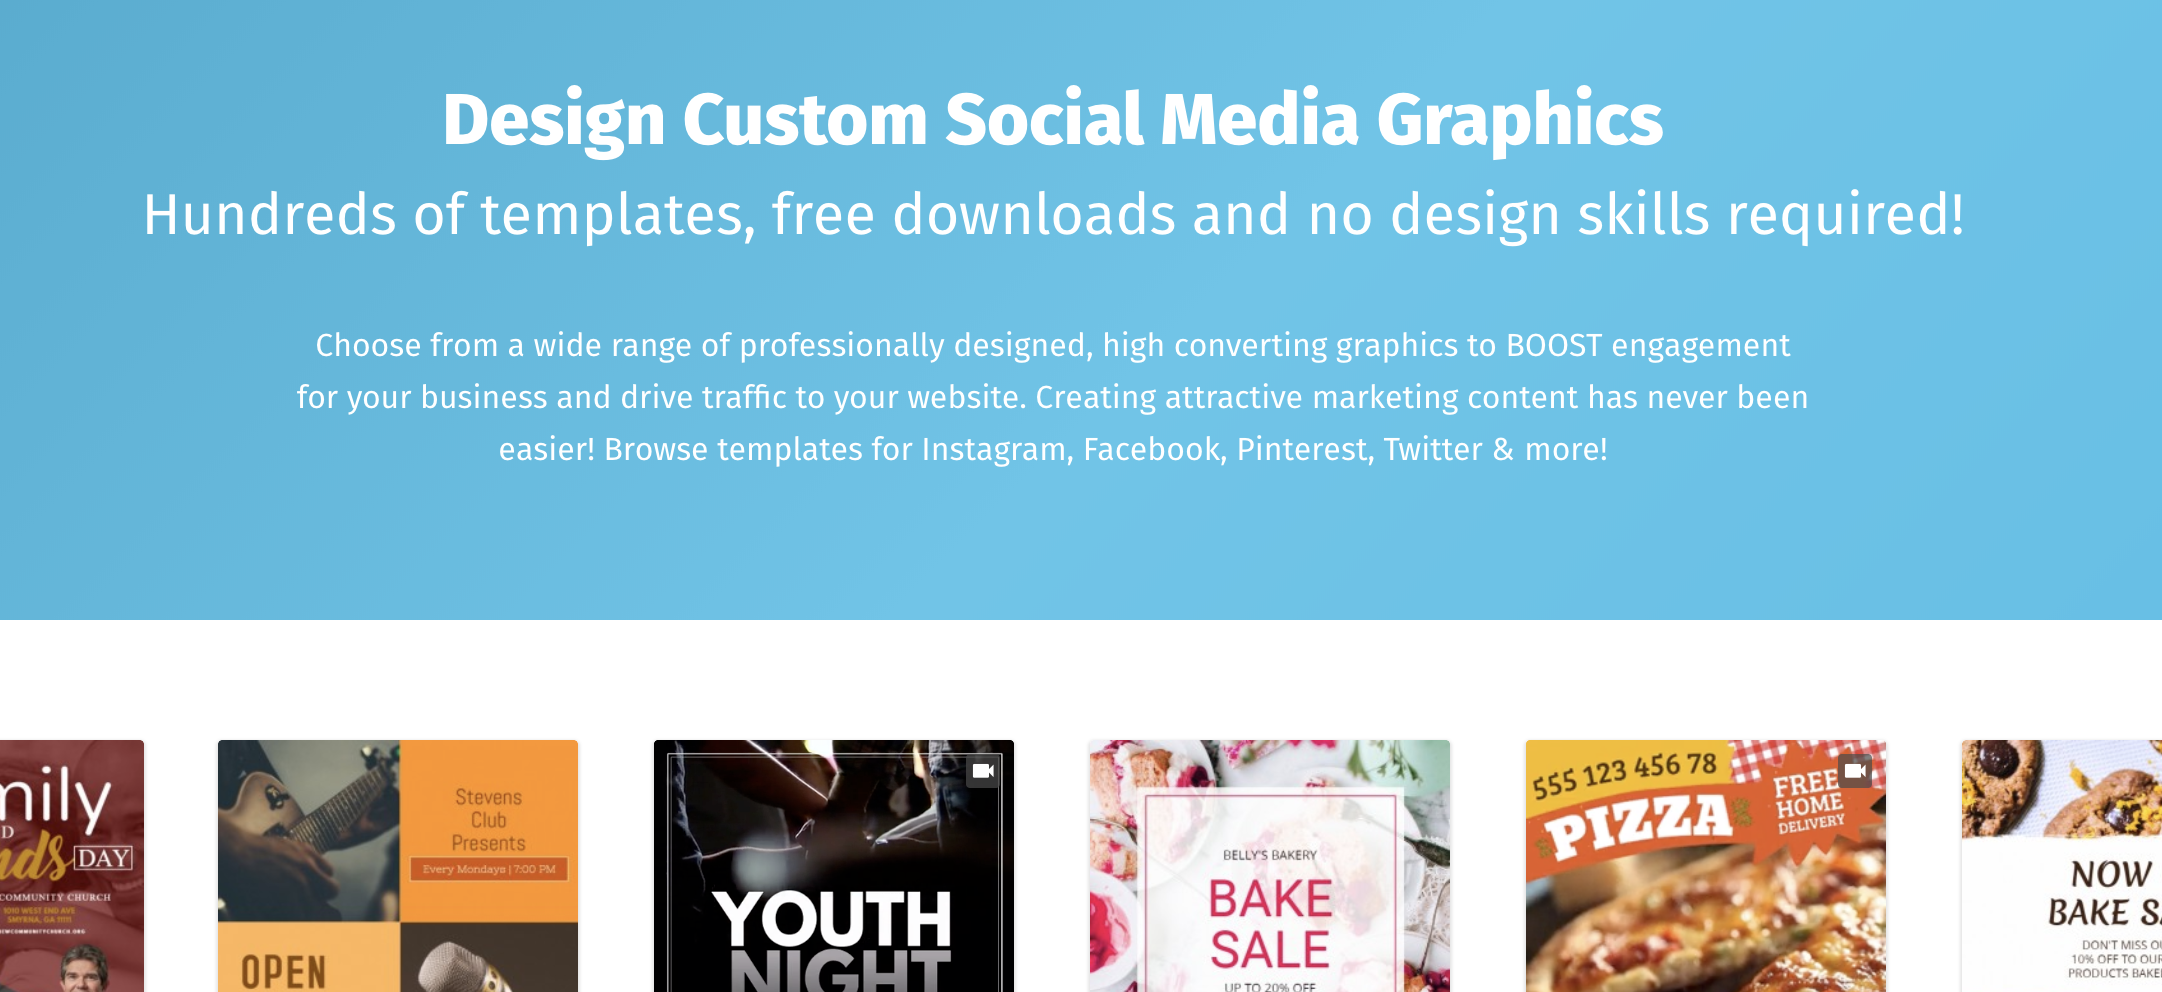 7 powerful tools marketers can use to create social media graphics